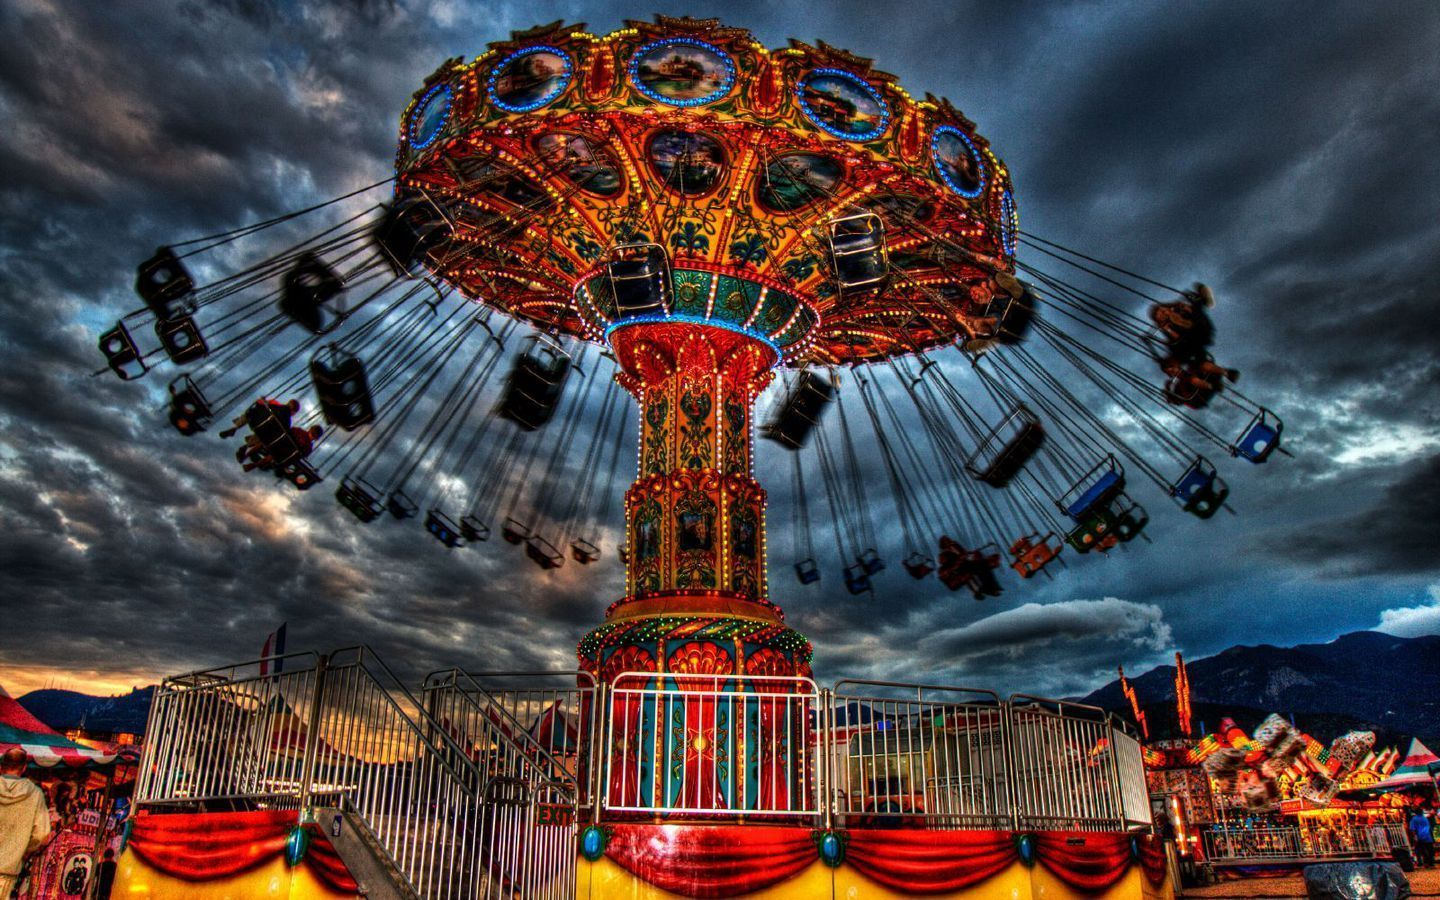 Circus And Carnivals Wallpaper Going To The Carnival Carnival Rides Creepy Carnival Carnival Images